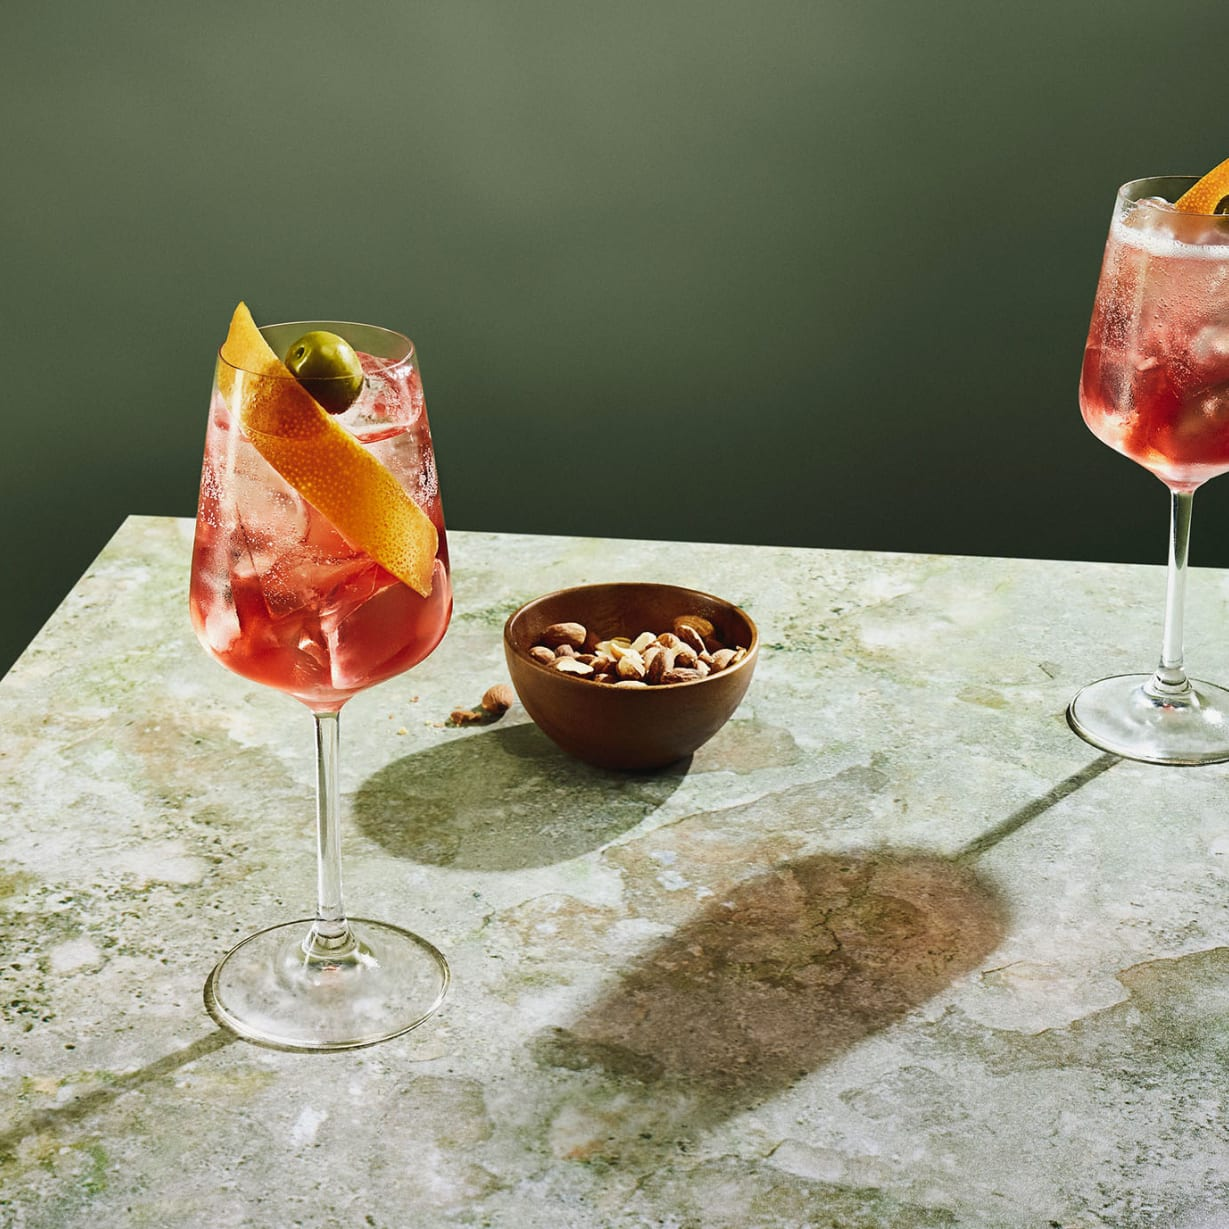 Two glasses with cocktails and bowl of olives